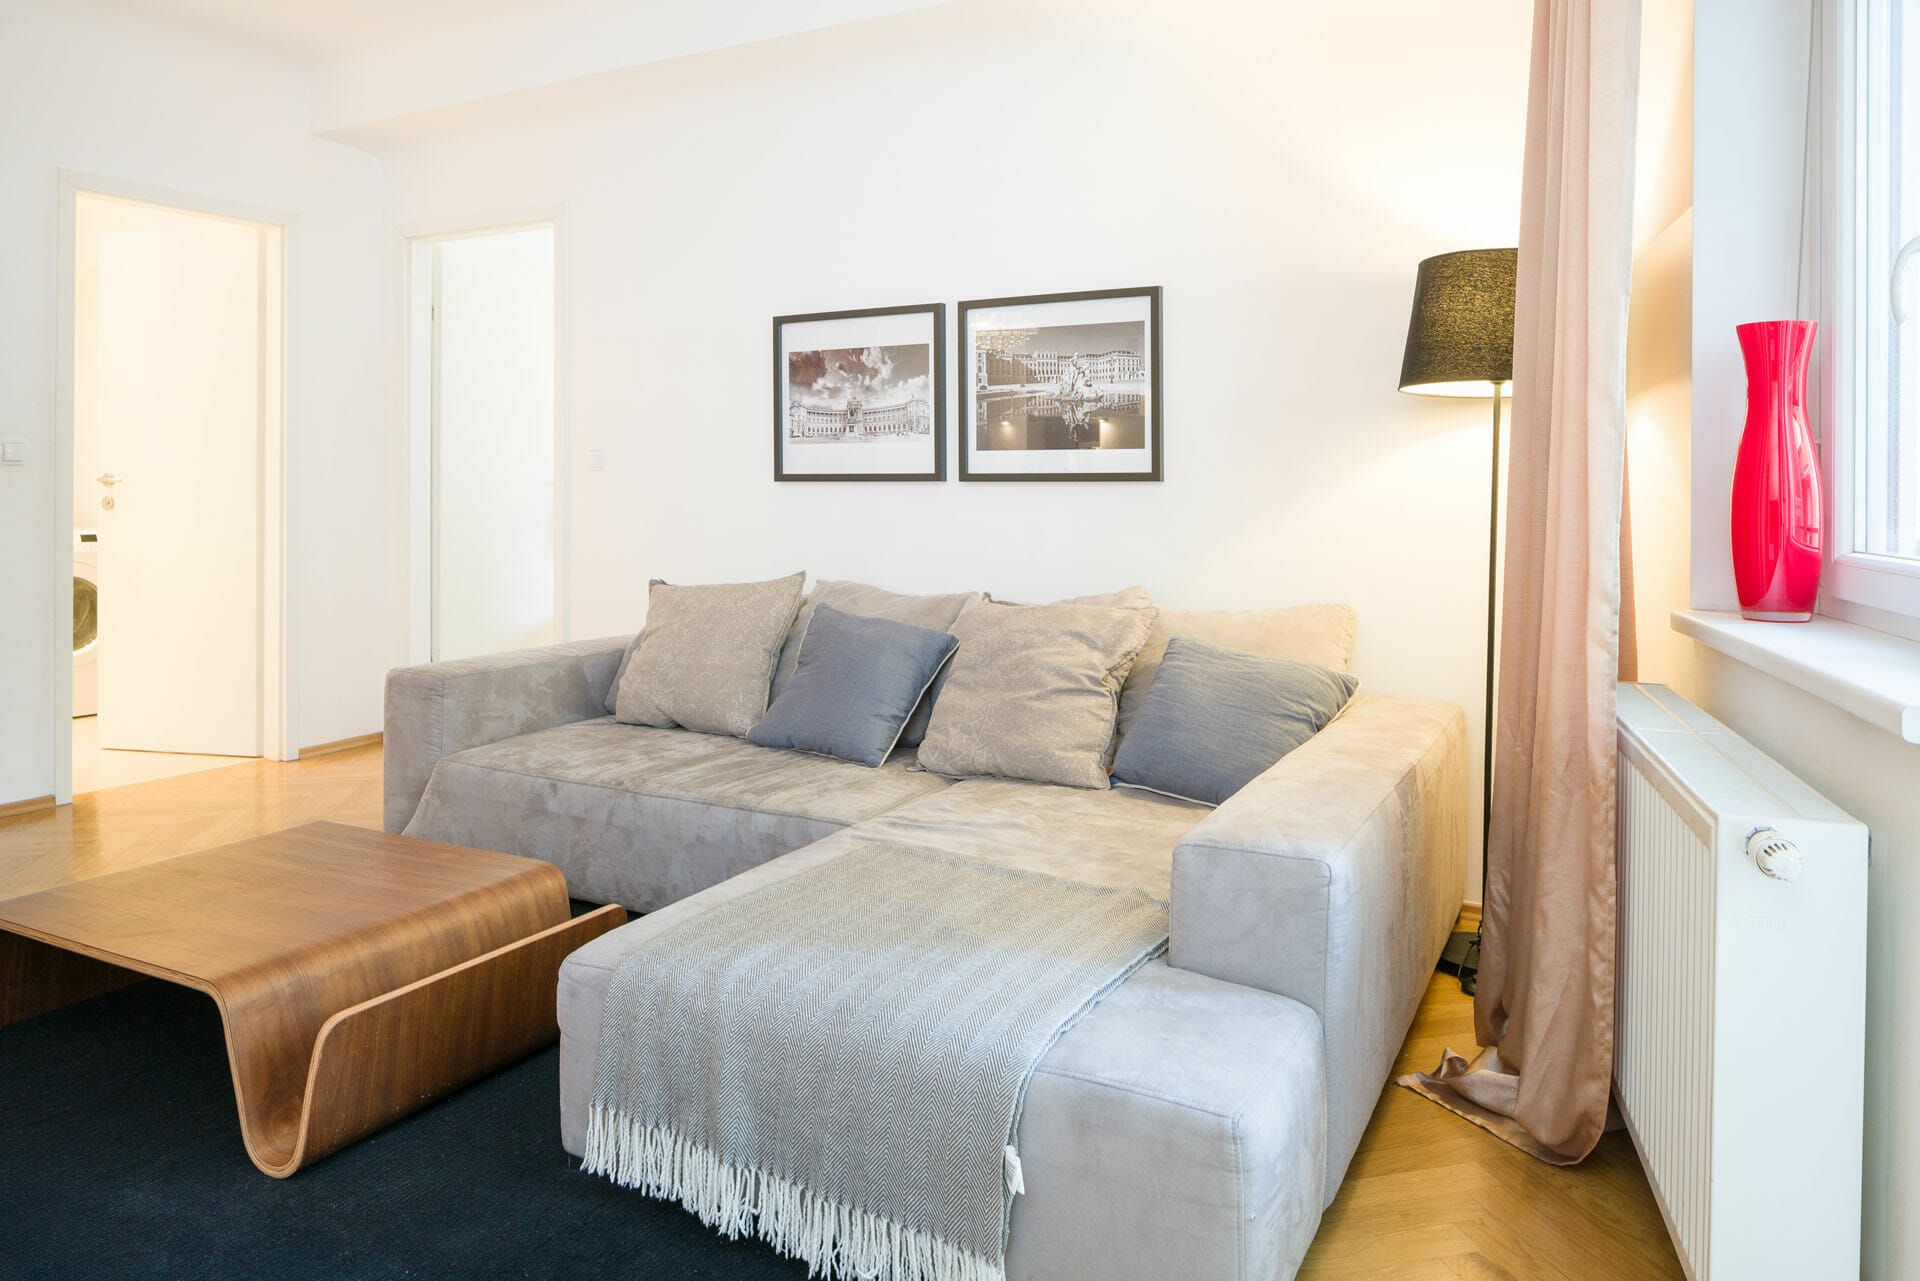 Prestige Apartments in Vienna Spacious Apartment close to Palais Liechtenstein. Bindergasse 5 - 9.  Internet, Digital Cable TV, Fully equipped kitchen, Fully furnished interior, Non smoking,